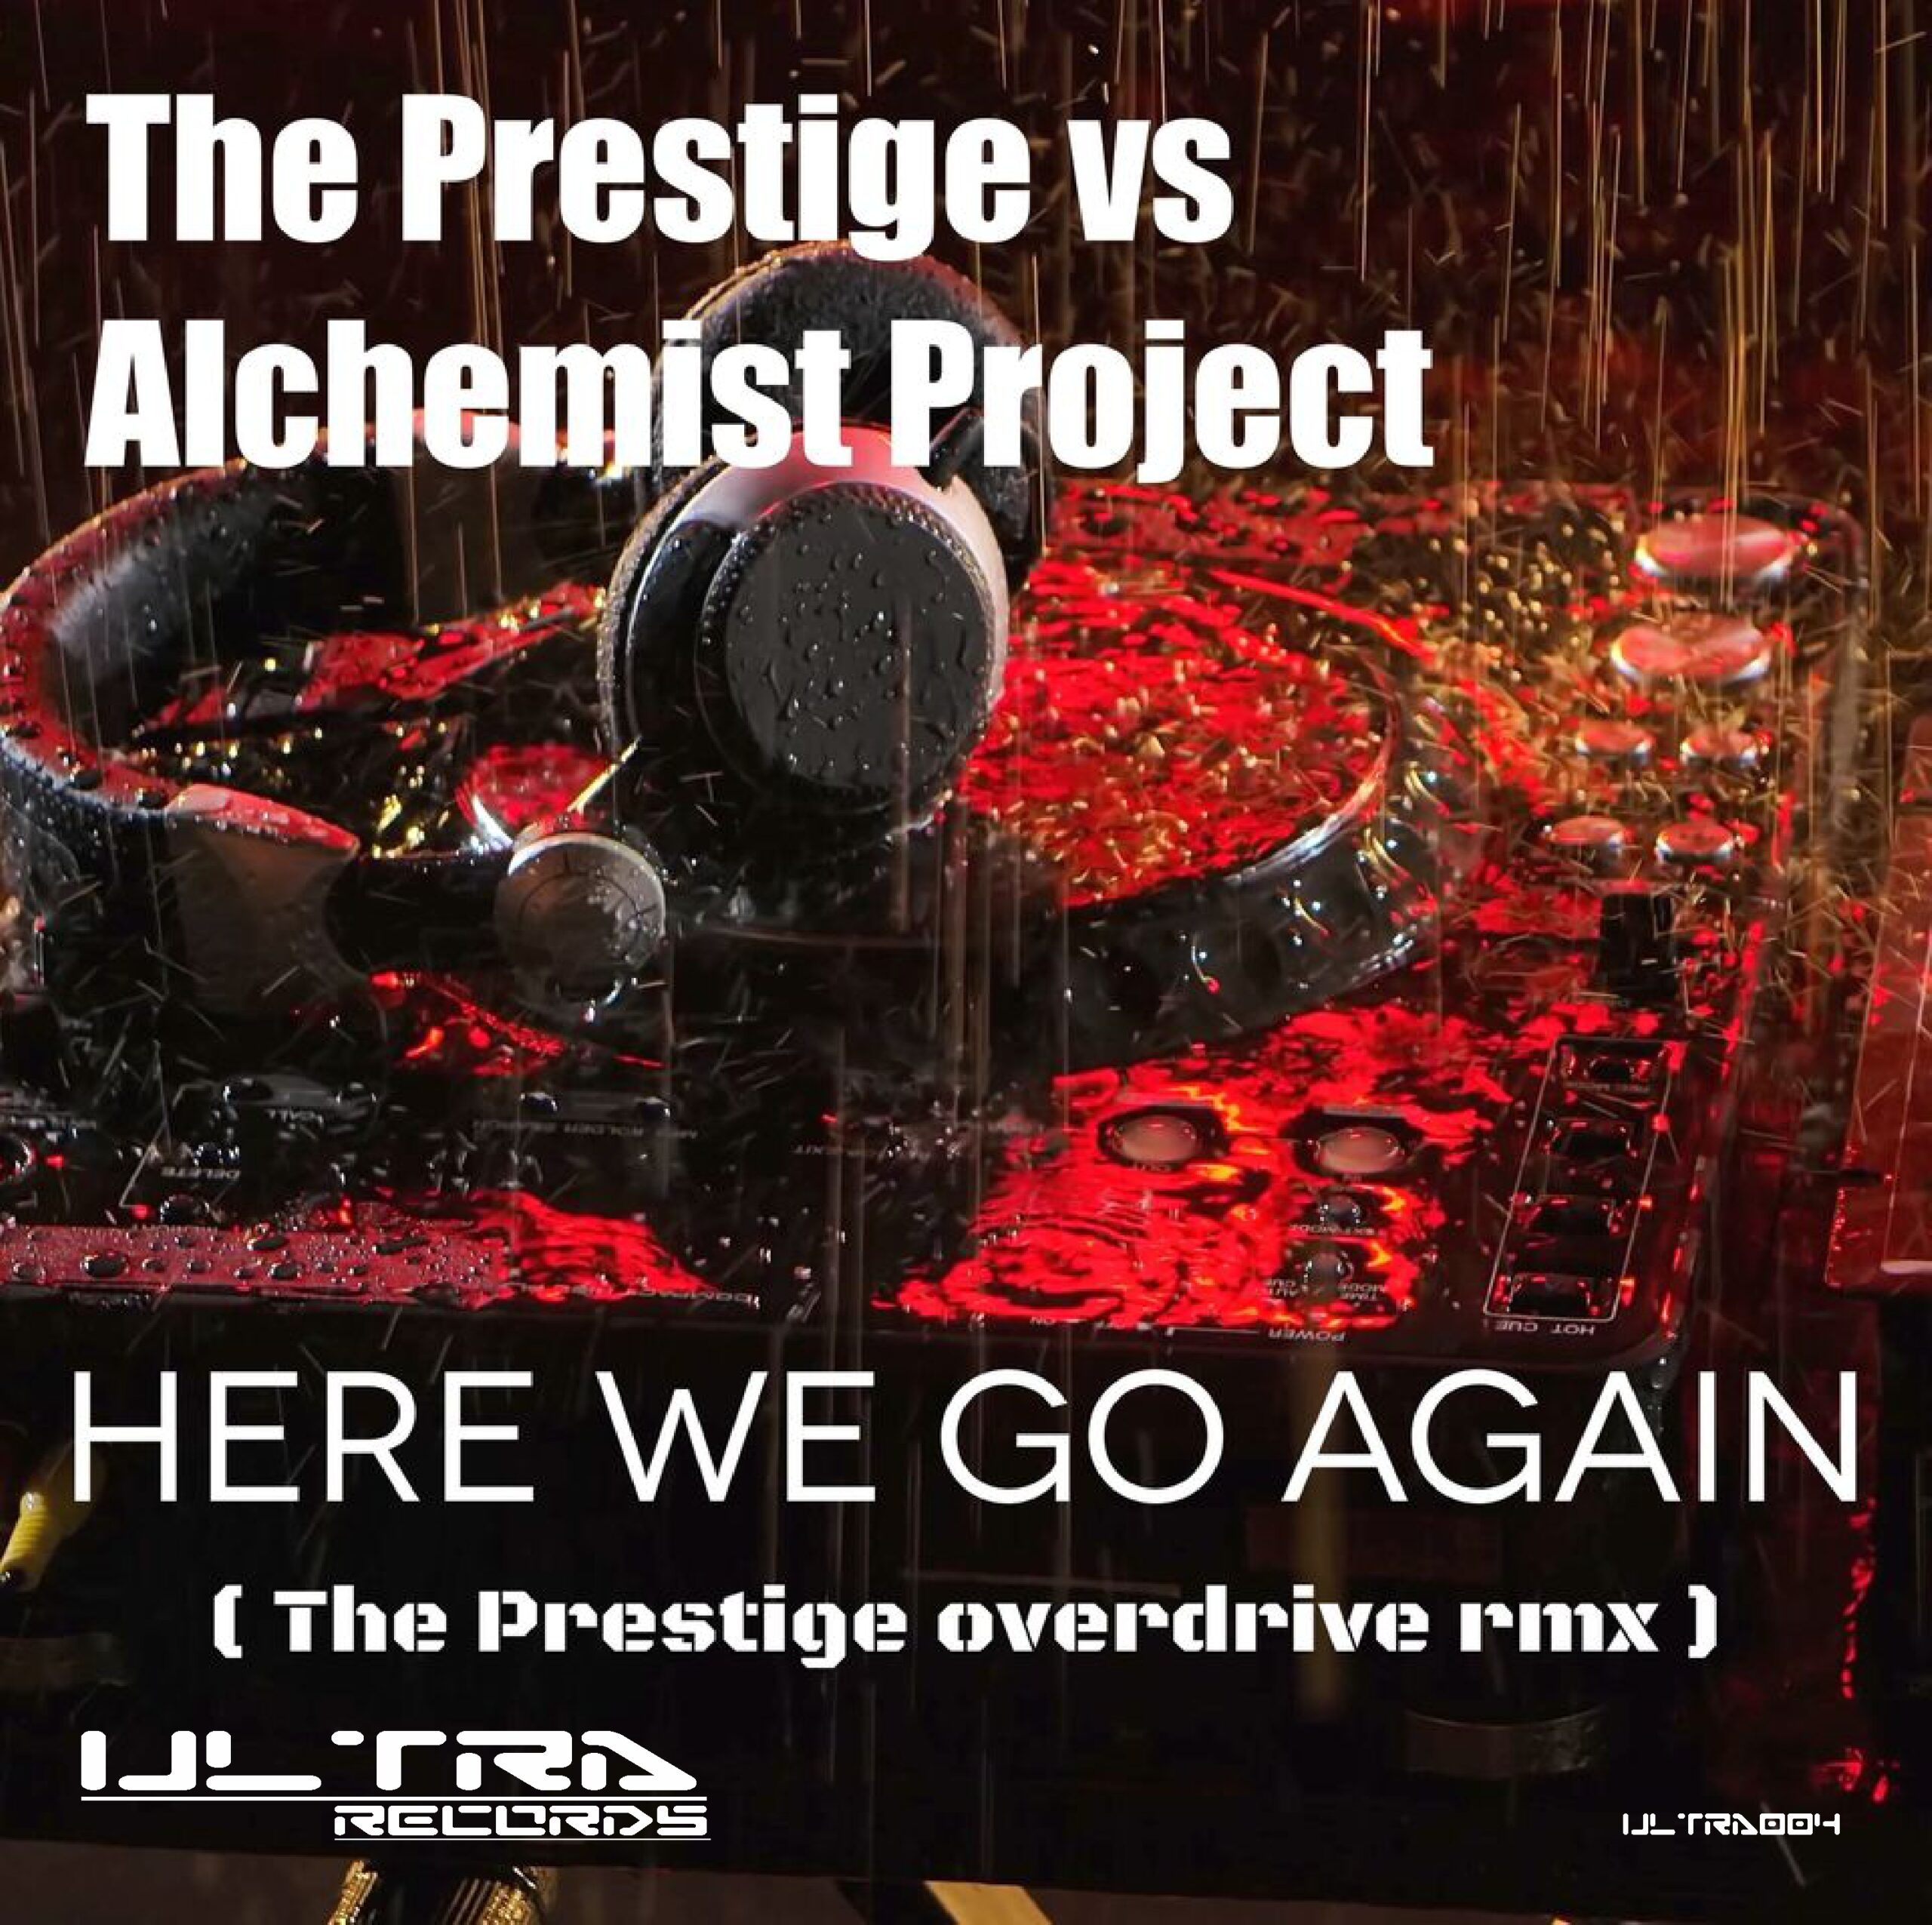 HERE WE GO AGAIN (THE PRESTIGE OVERDRIVE REMIX) (Ultra Records )